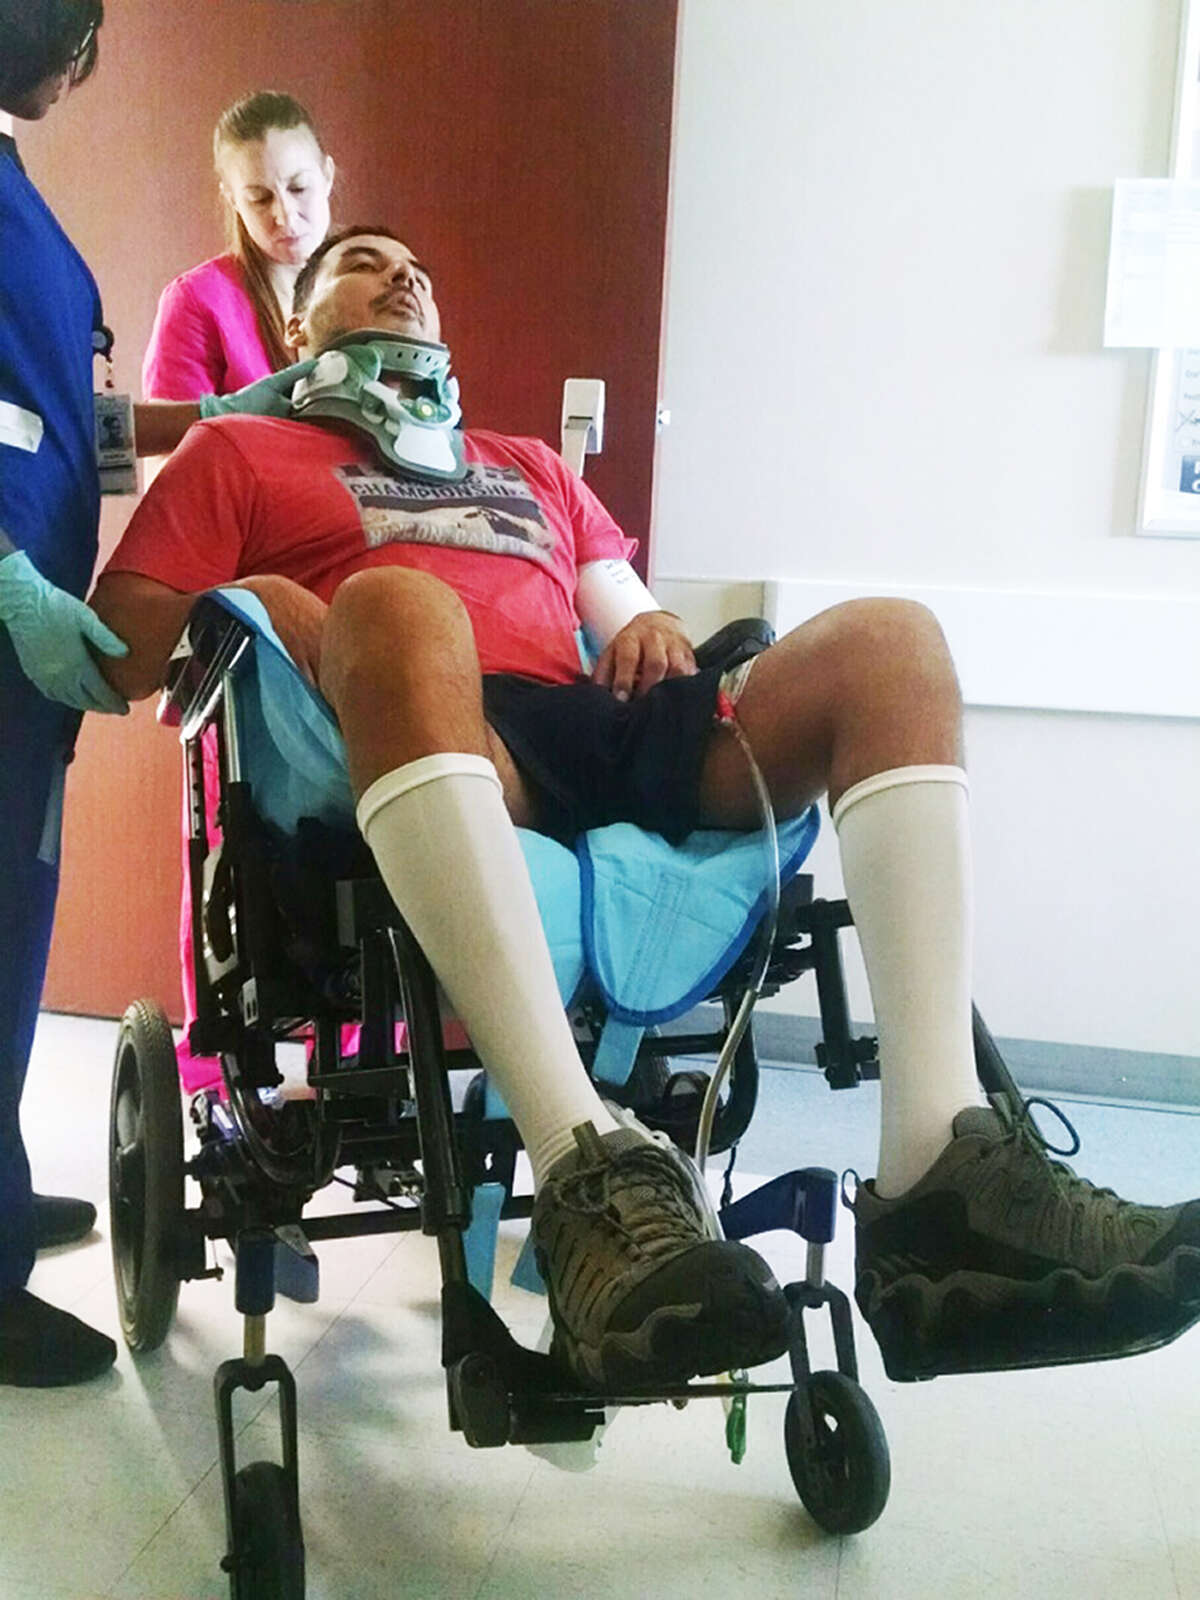 Roger Carlos received physical therapy in Houston for paralysis resulting from complications of surgery to relieve pain he suffered during the mistaken beating by San Antpnio Police Department officers.